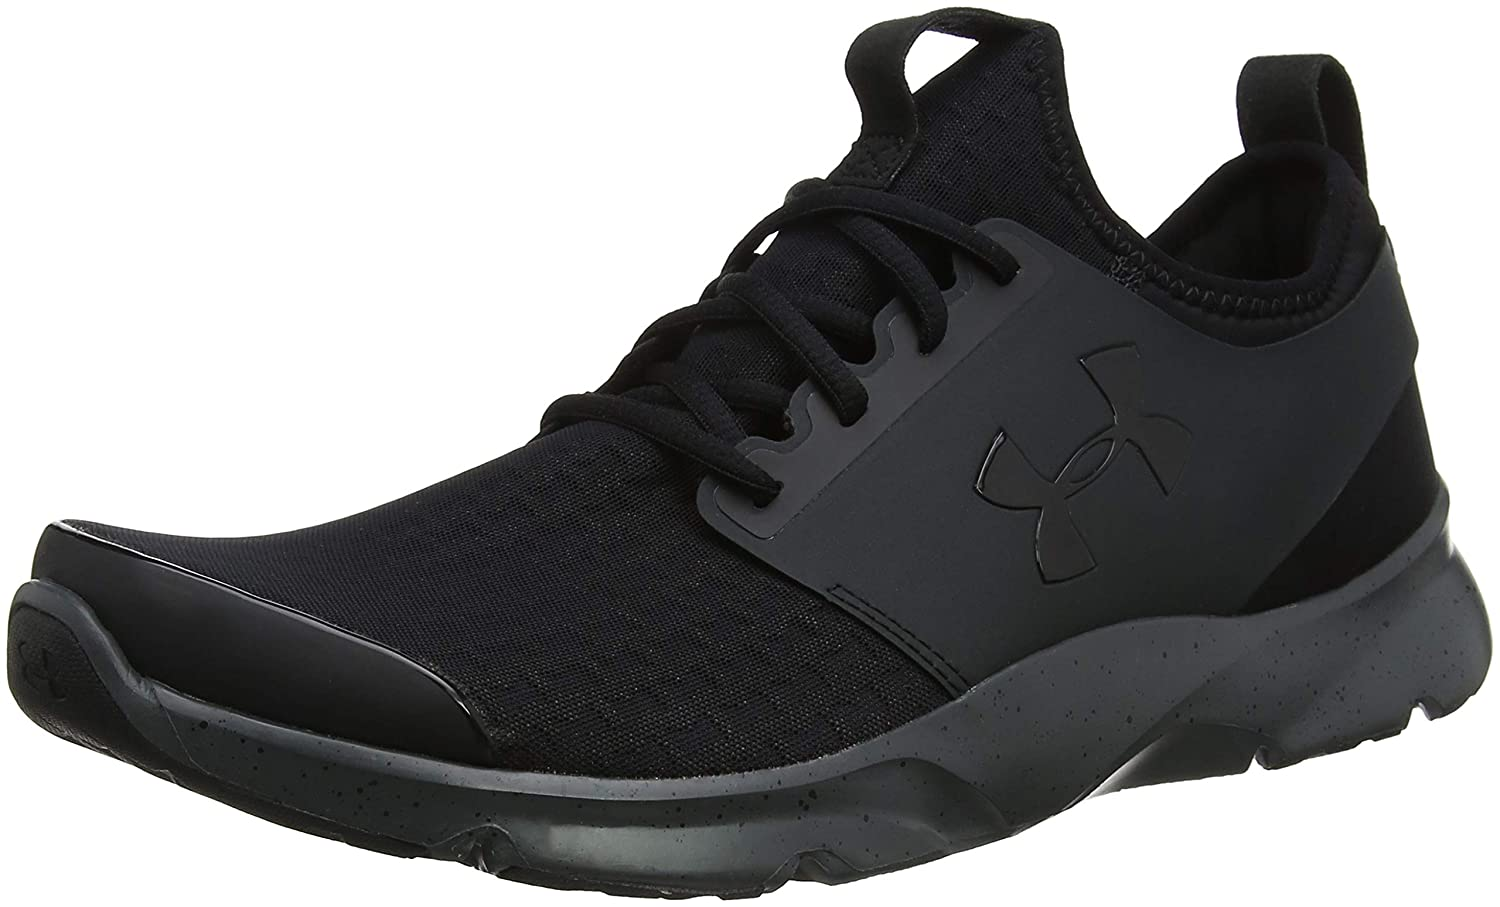 TALLA 40 EU. Under Armour Drift, Zapatillas de Running para Hombre